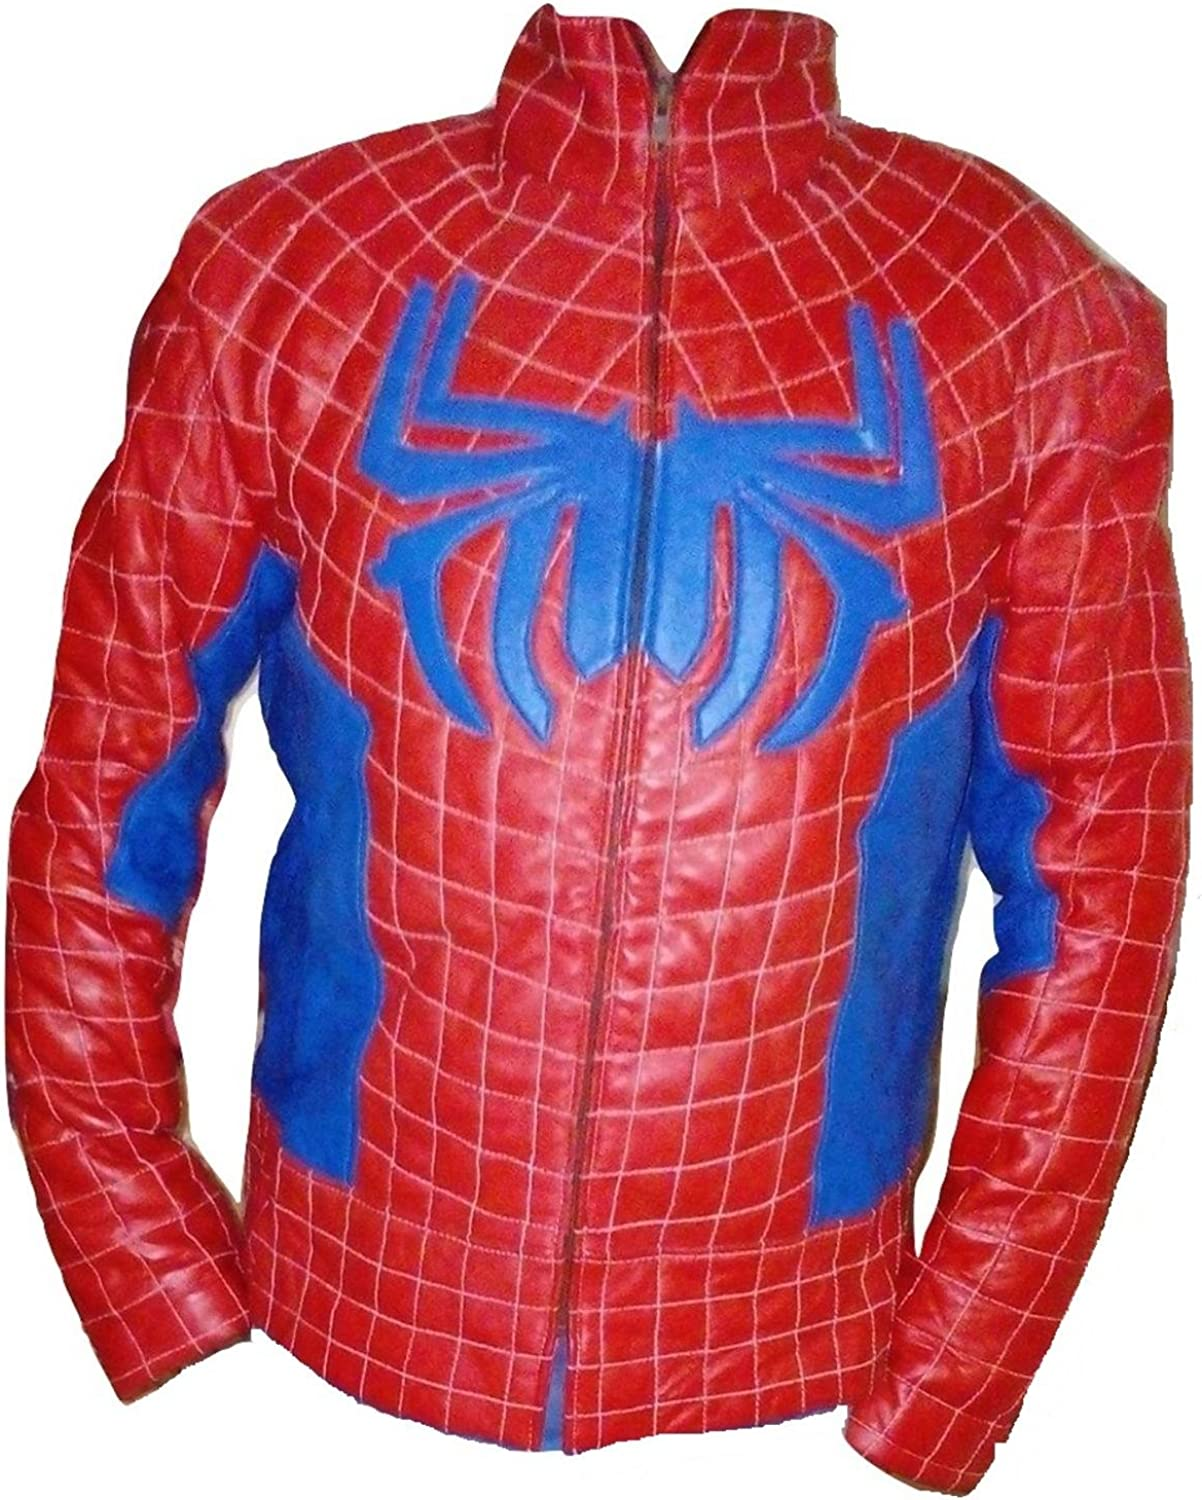 Bestzo Mens Fashion Spiderman New Homecoming Real Leather Jacket Red//Blue XS-5XL